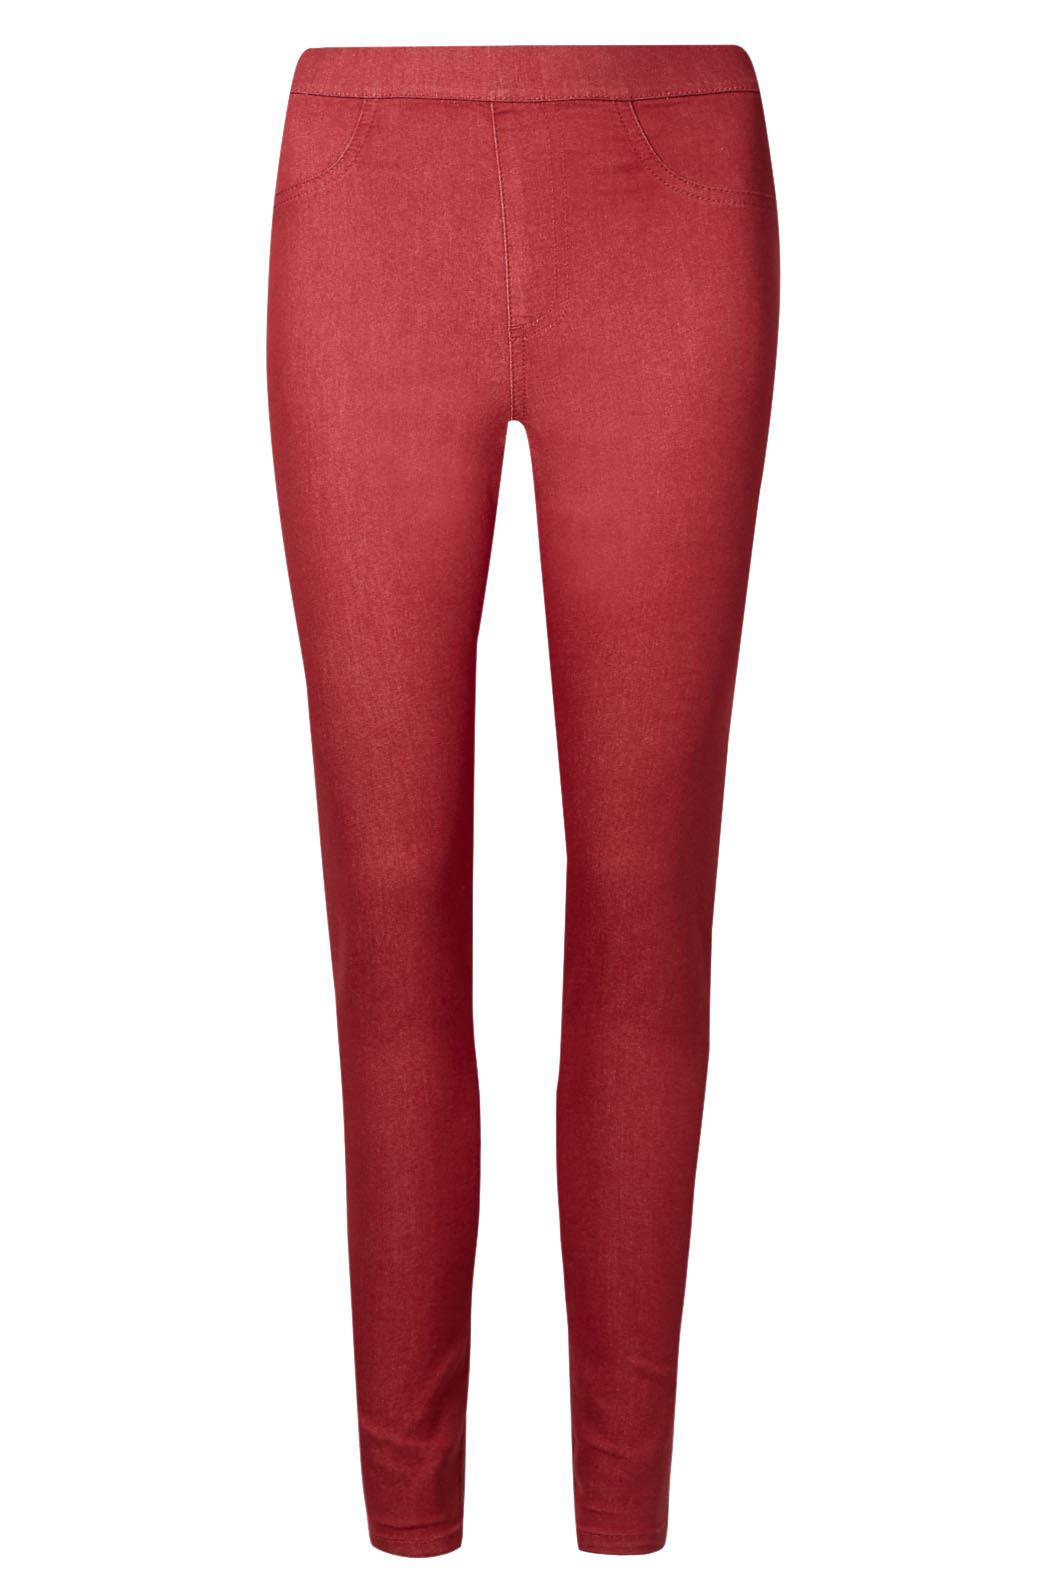 NEW-Ex-M-amp-S-Womens-Stretch-Fit-High-Waist-Skinny-Jeggings-Size-8-10-12-14-16-18 thumbnail 10